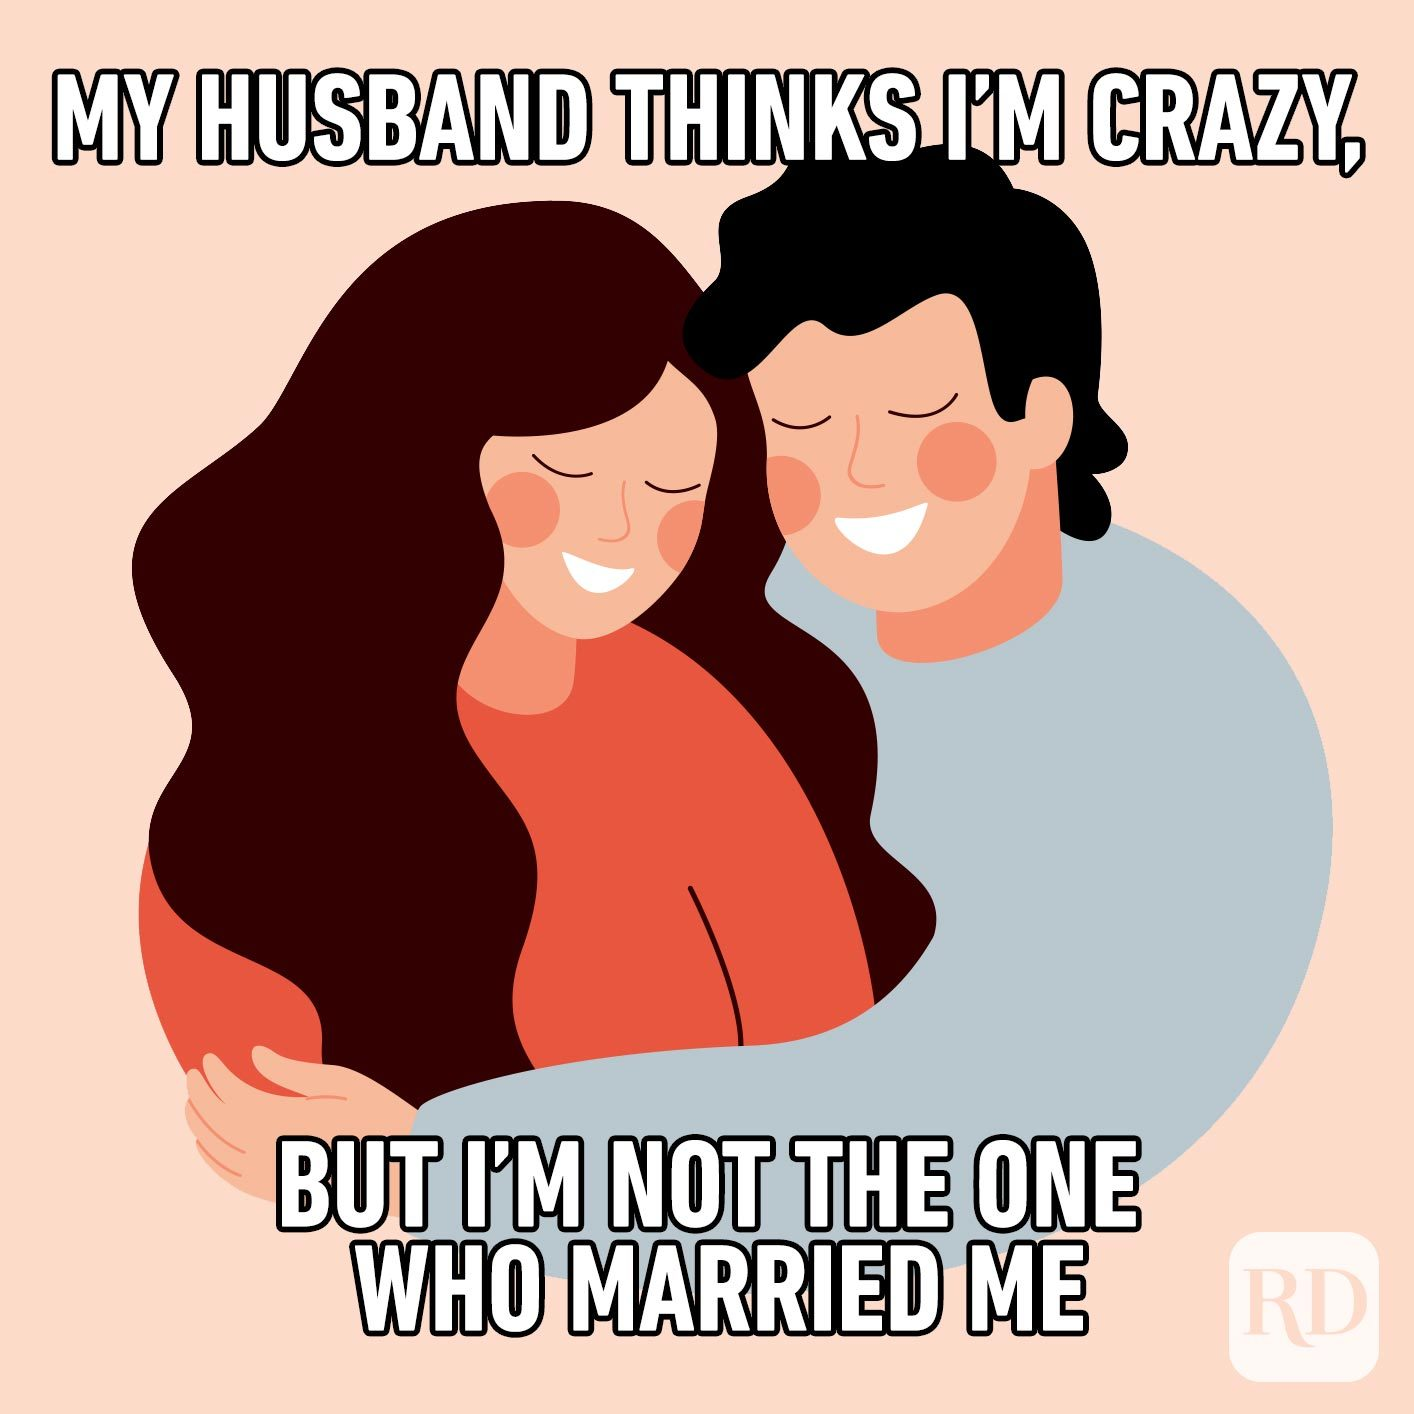 Illustration of loving smiling couple. Meme text: My husband thinks I'm crazy, but I'm not the one who married me